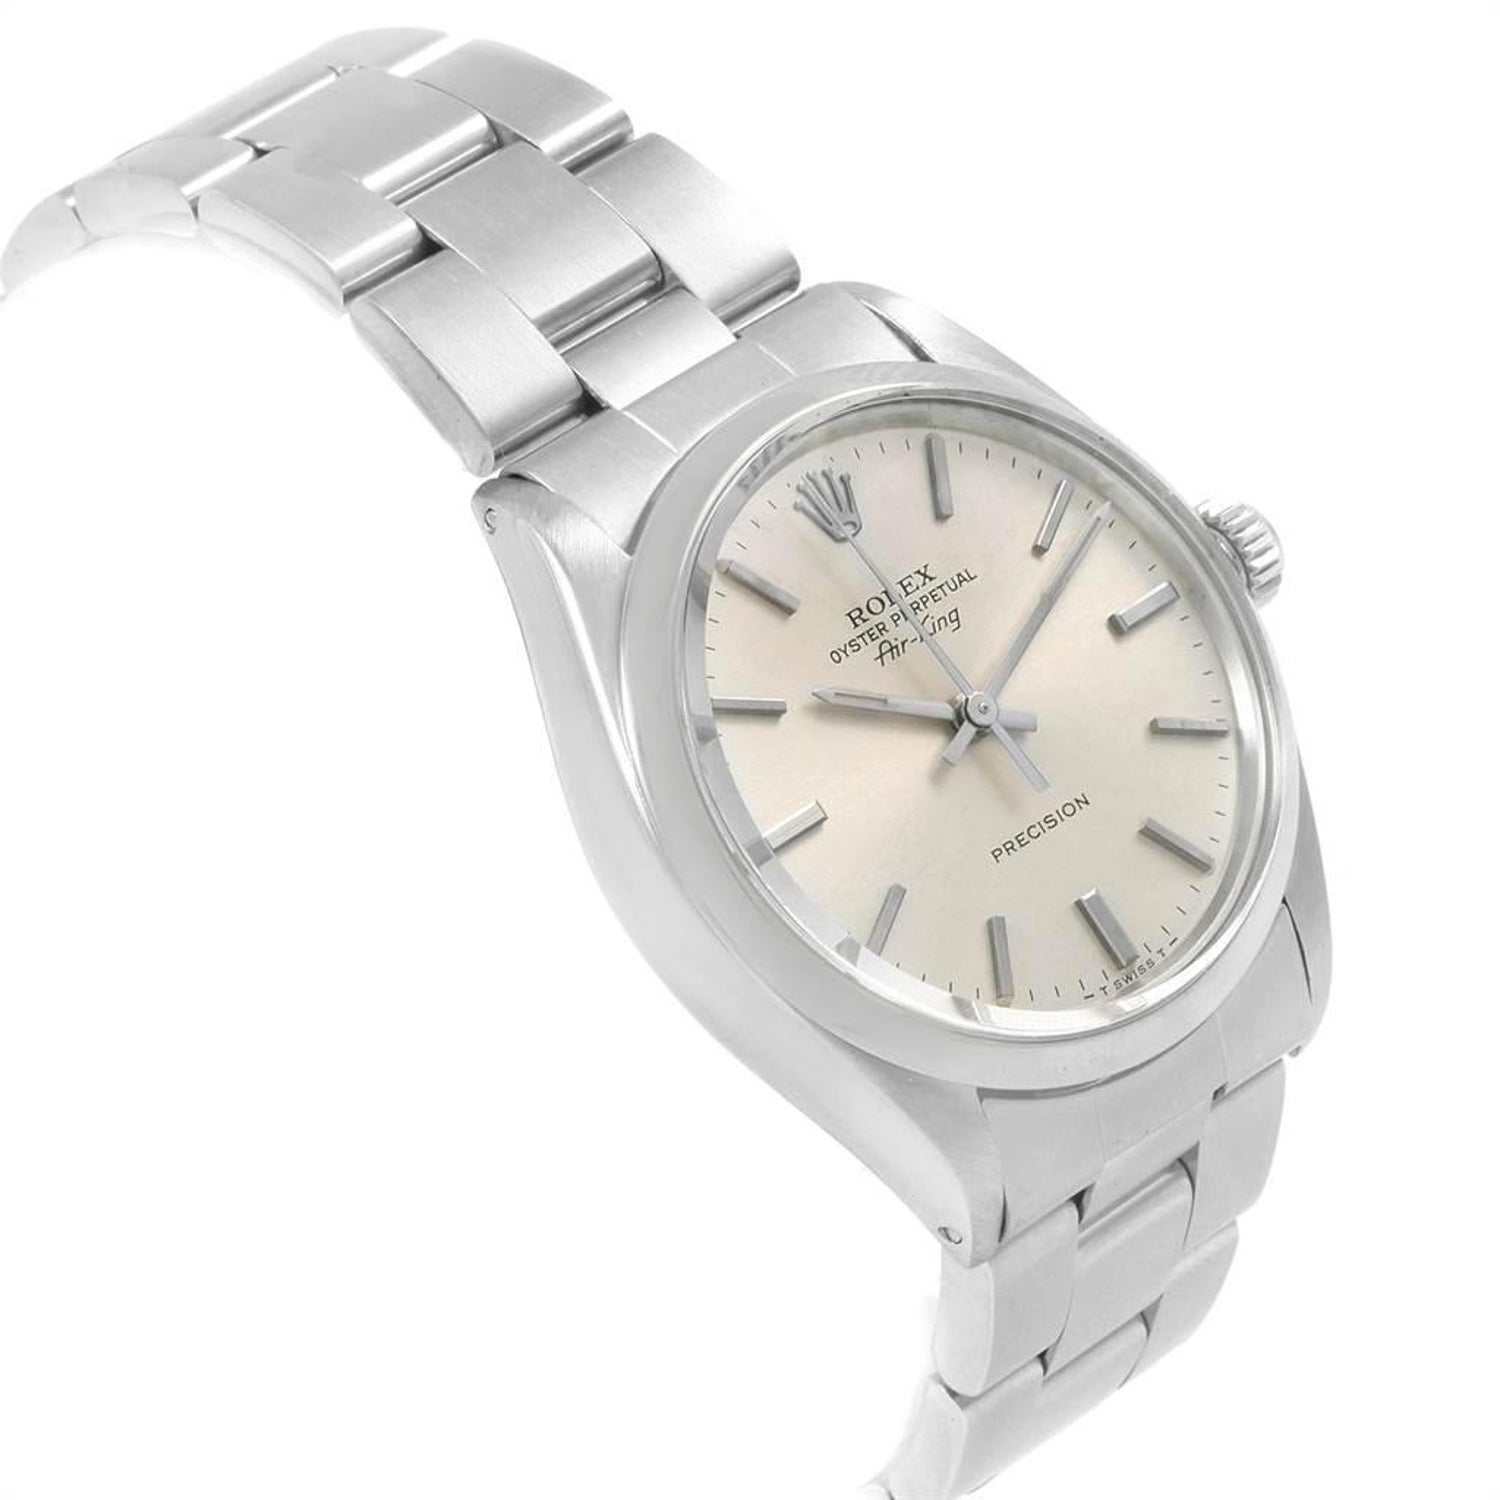 f685e524c377 Rolex Air King Vintage Stainless Steel Silver Dial Men s Watch 5500 For  Sale at 1stdibs